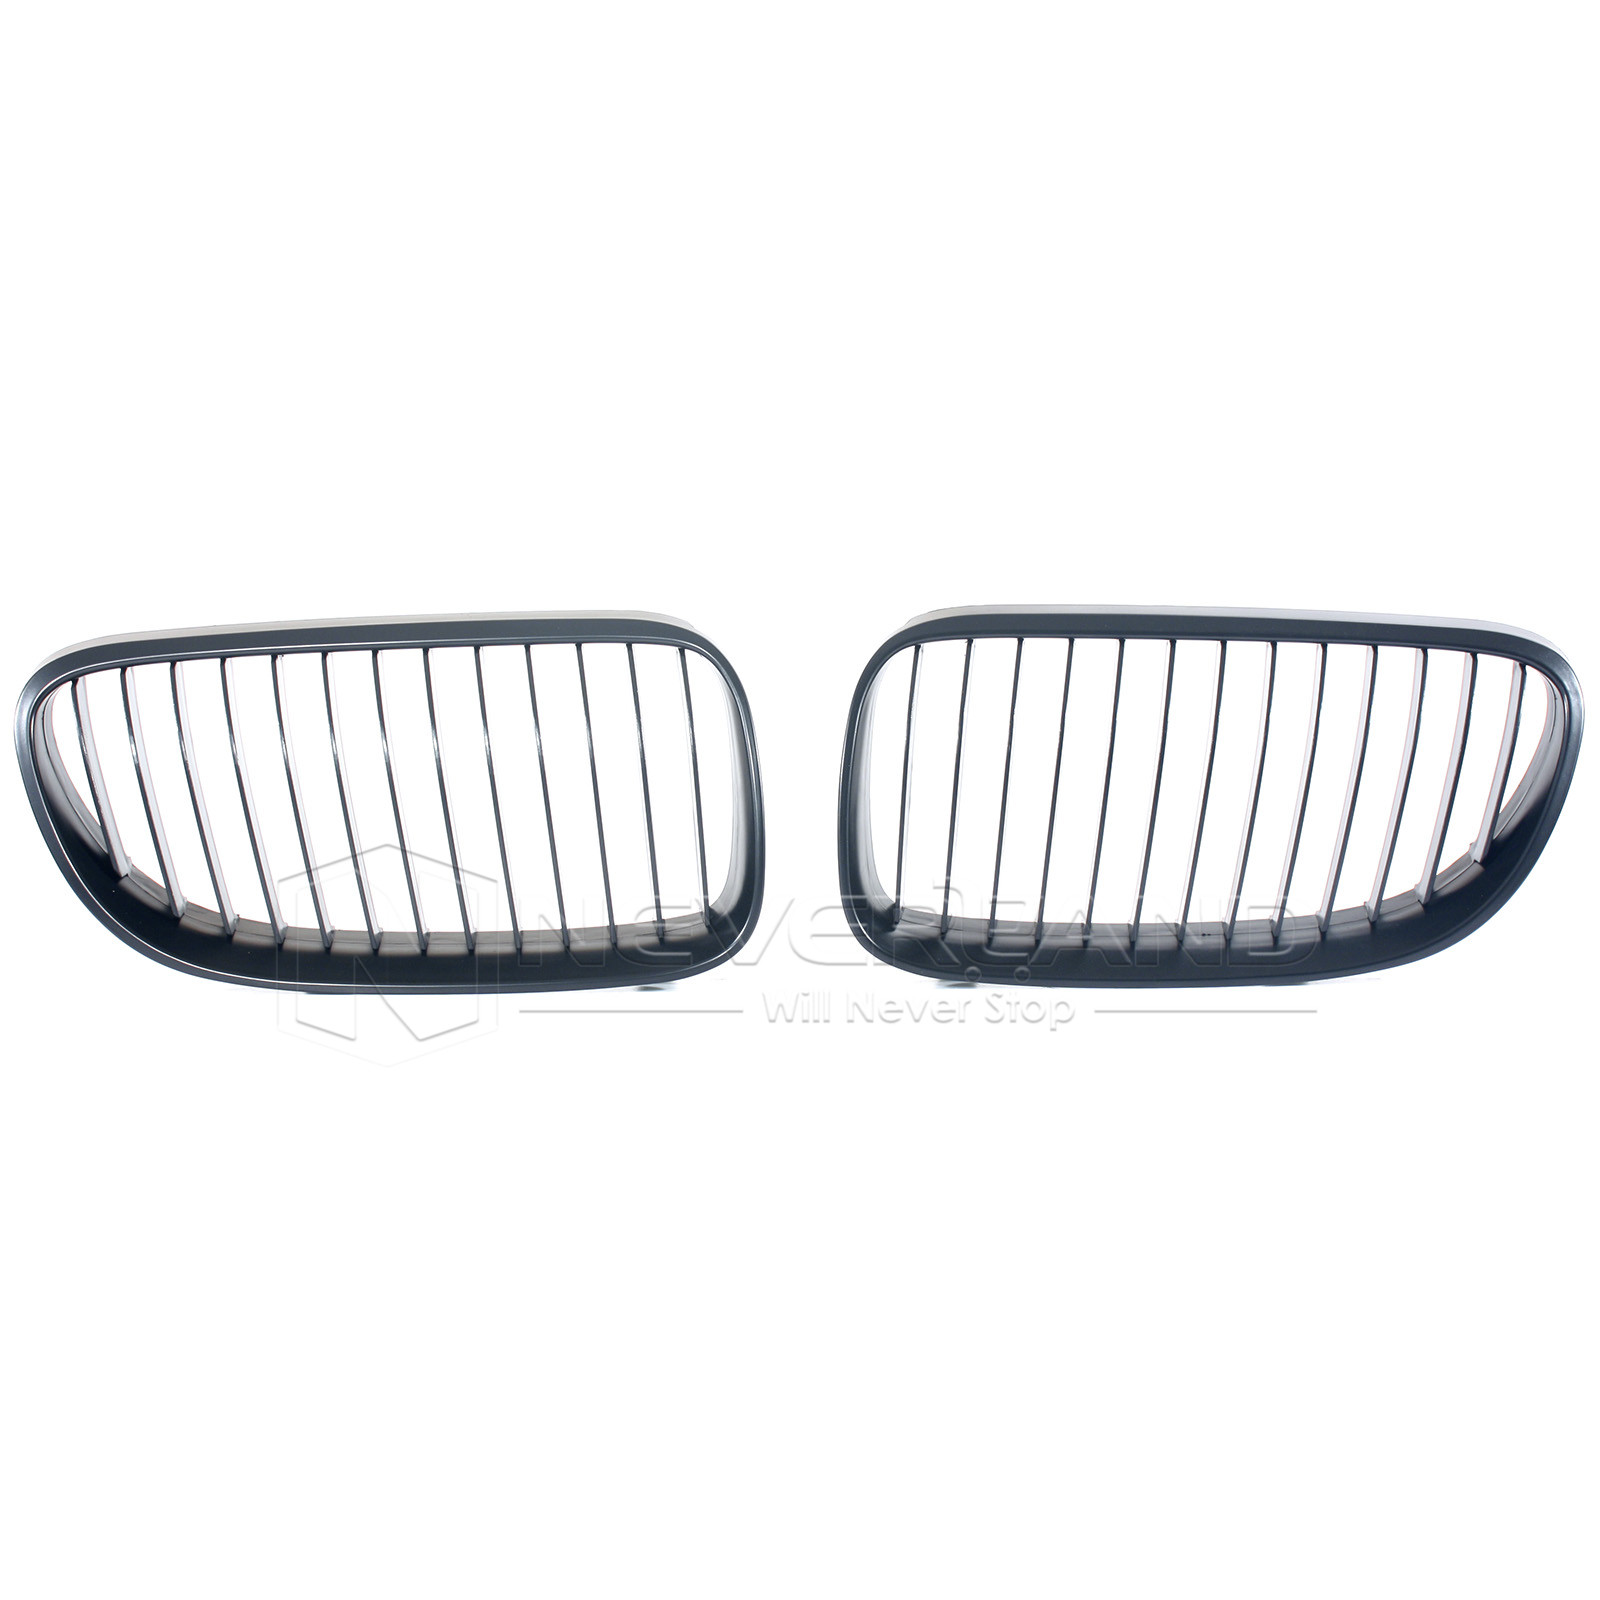 2x Front Bumper Kidney Grille For E92 E93 2d Coupe